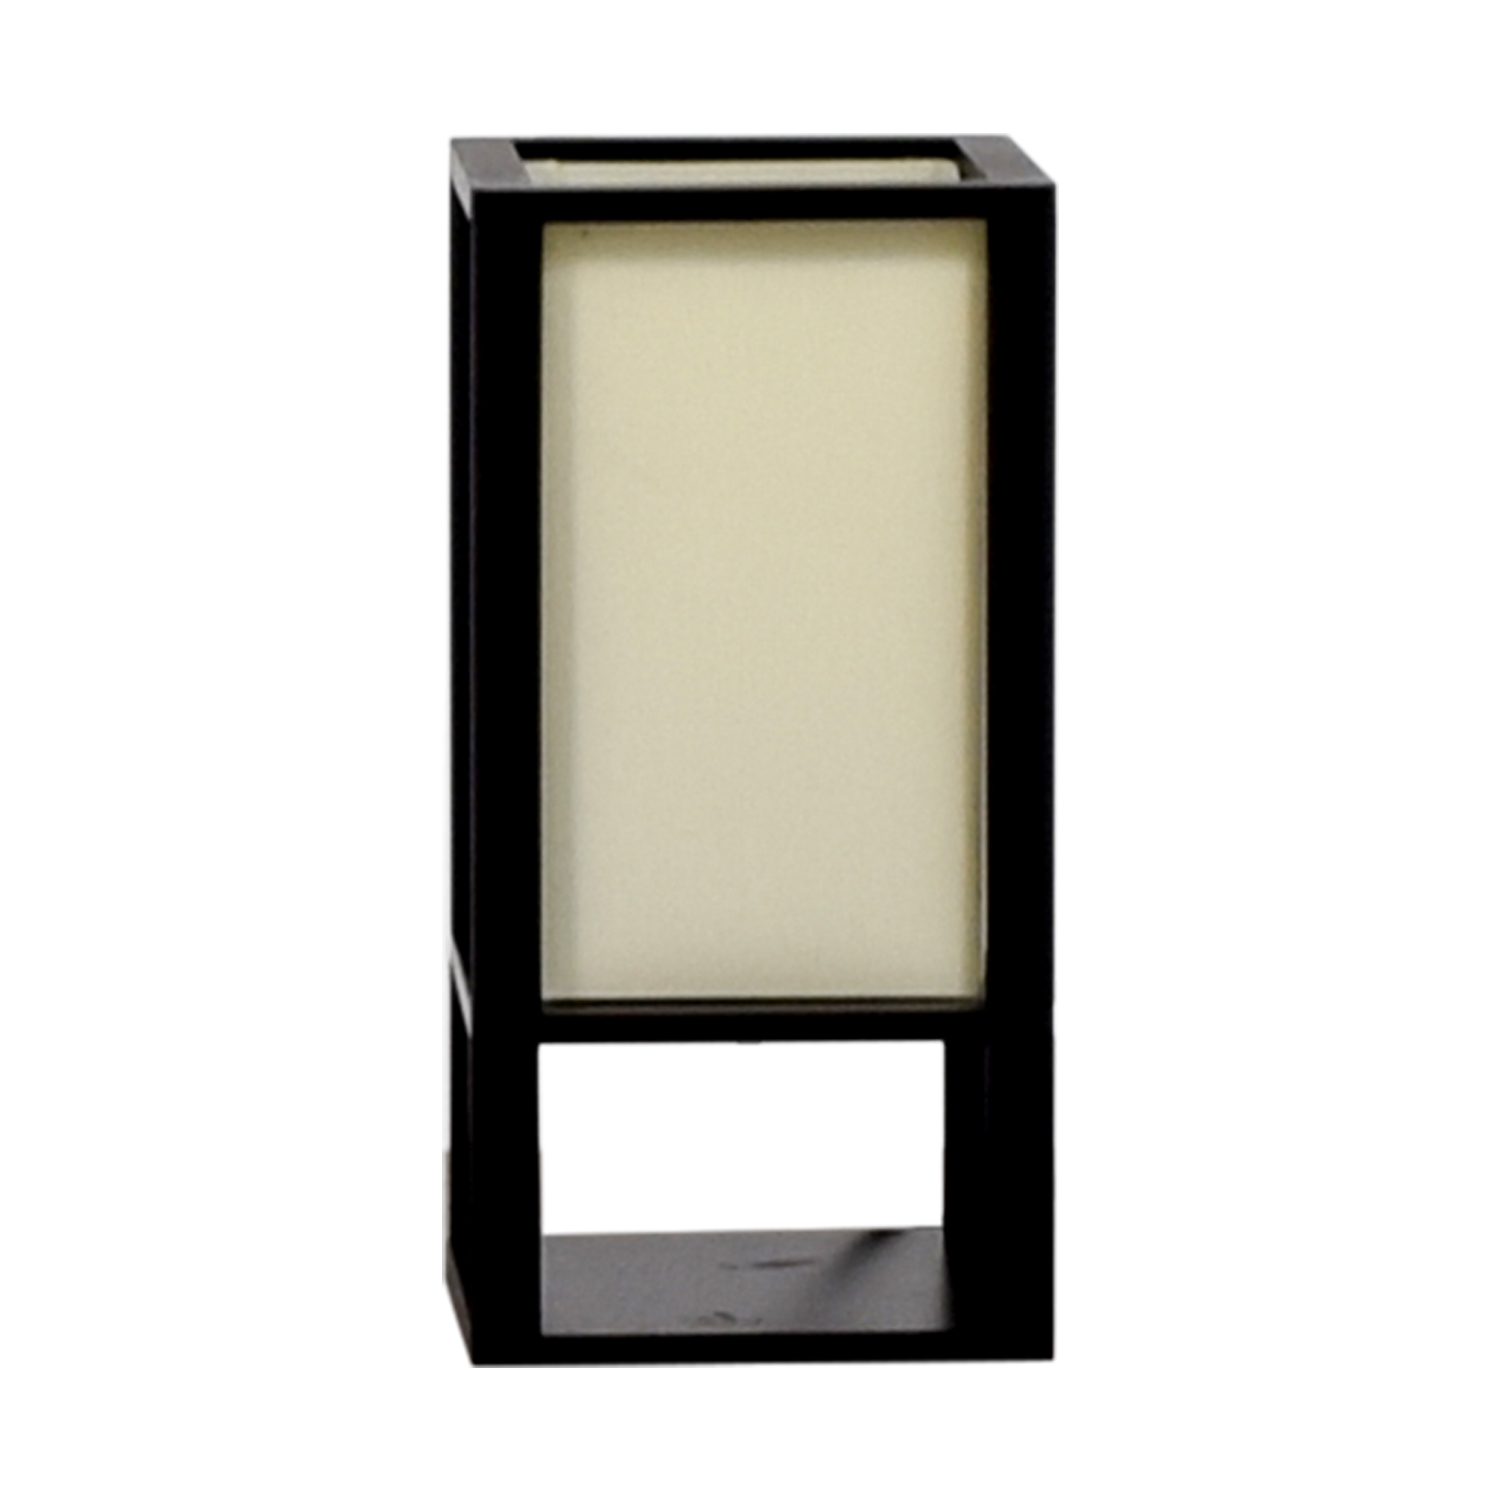 Threshold Black Table lamp / Decor